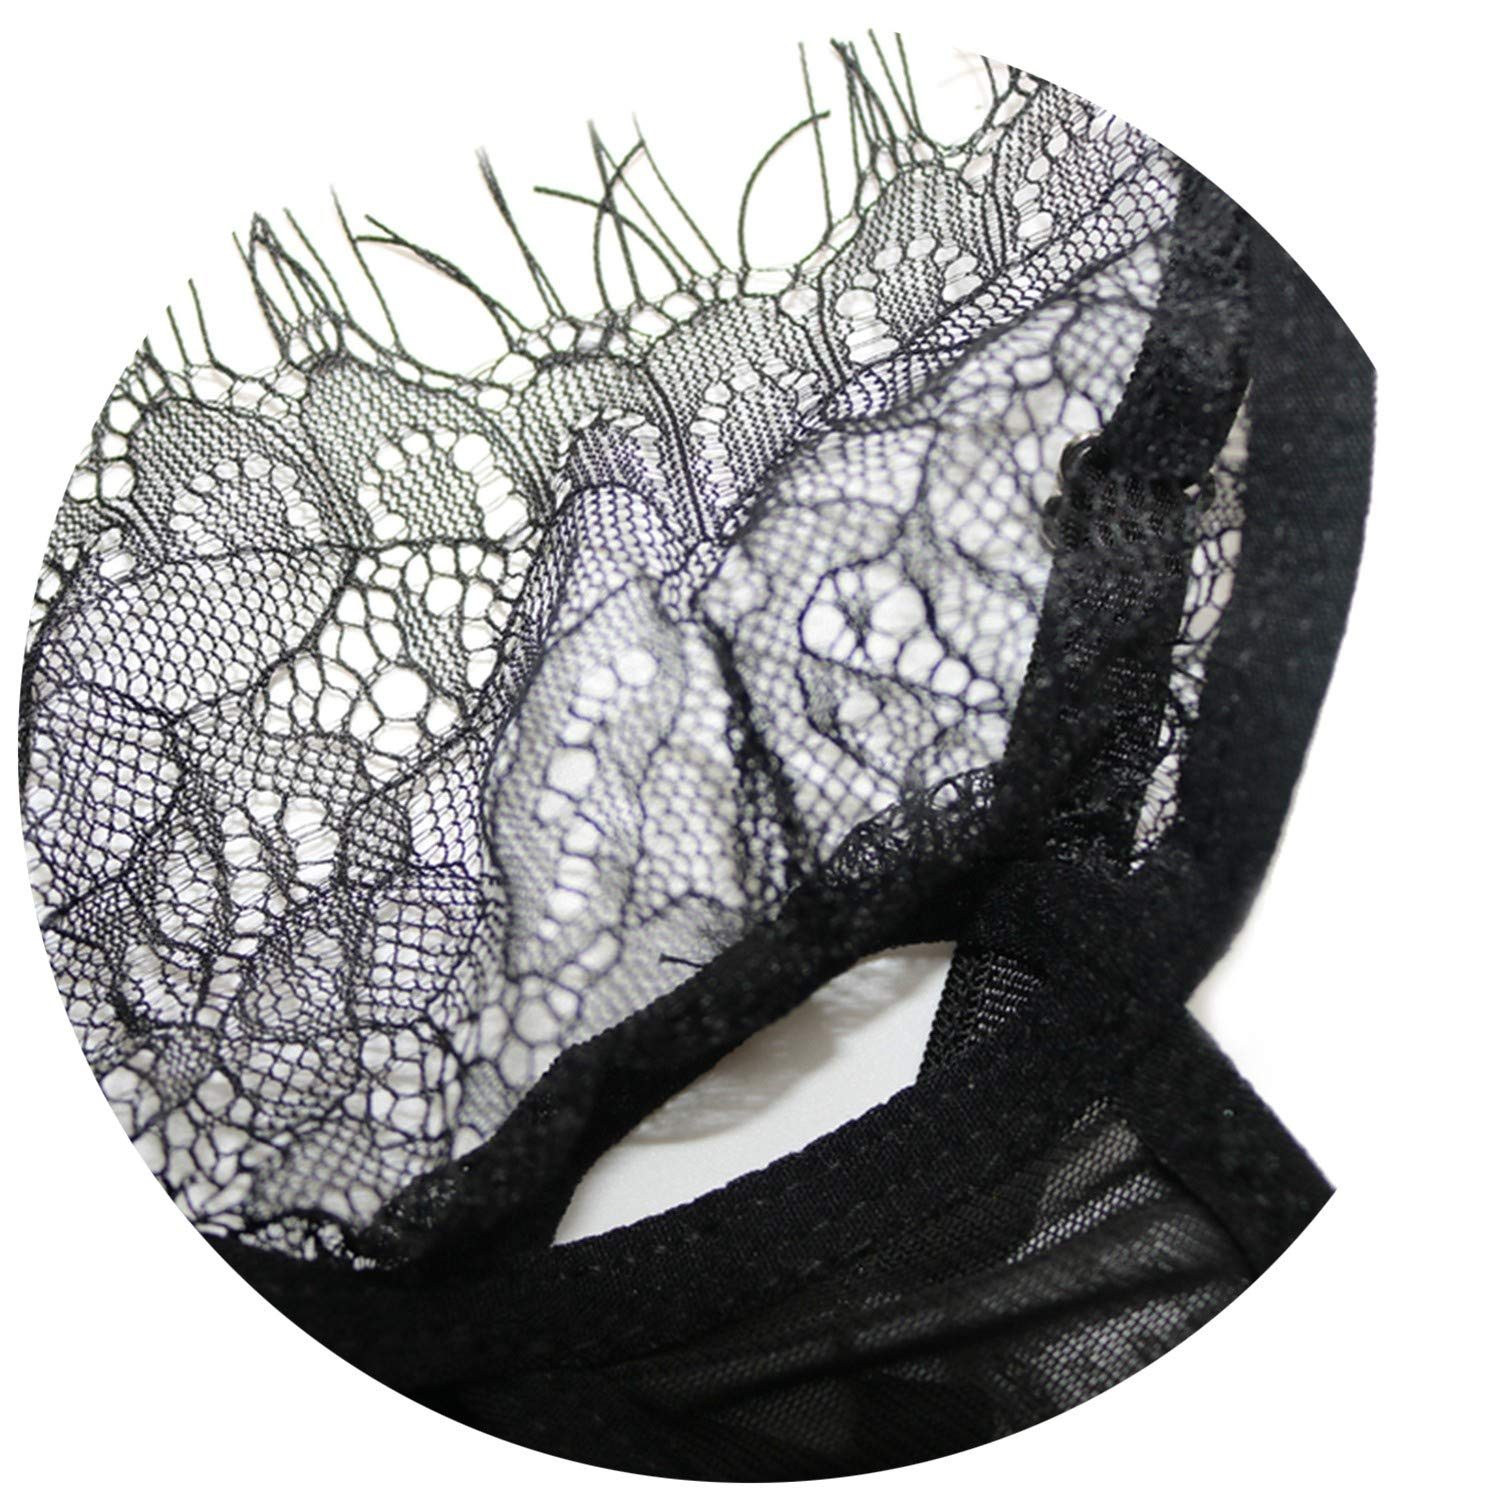 Amazon.com: Cup Wire Free lace Women Lingerie Seamless Transparent Halter Hollow Underwear Bandage Thong Panties: Clothing